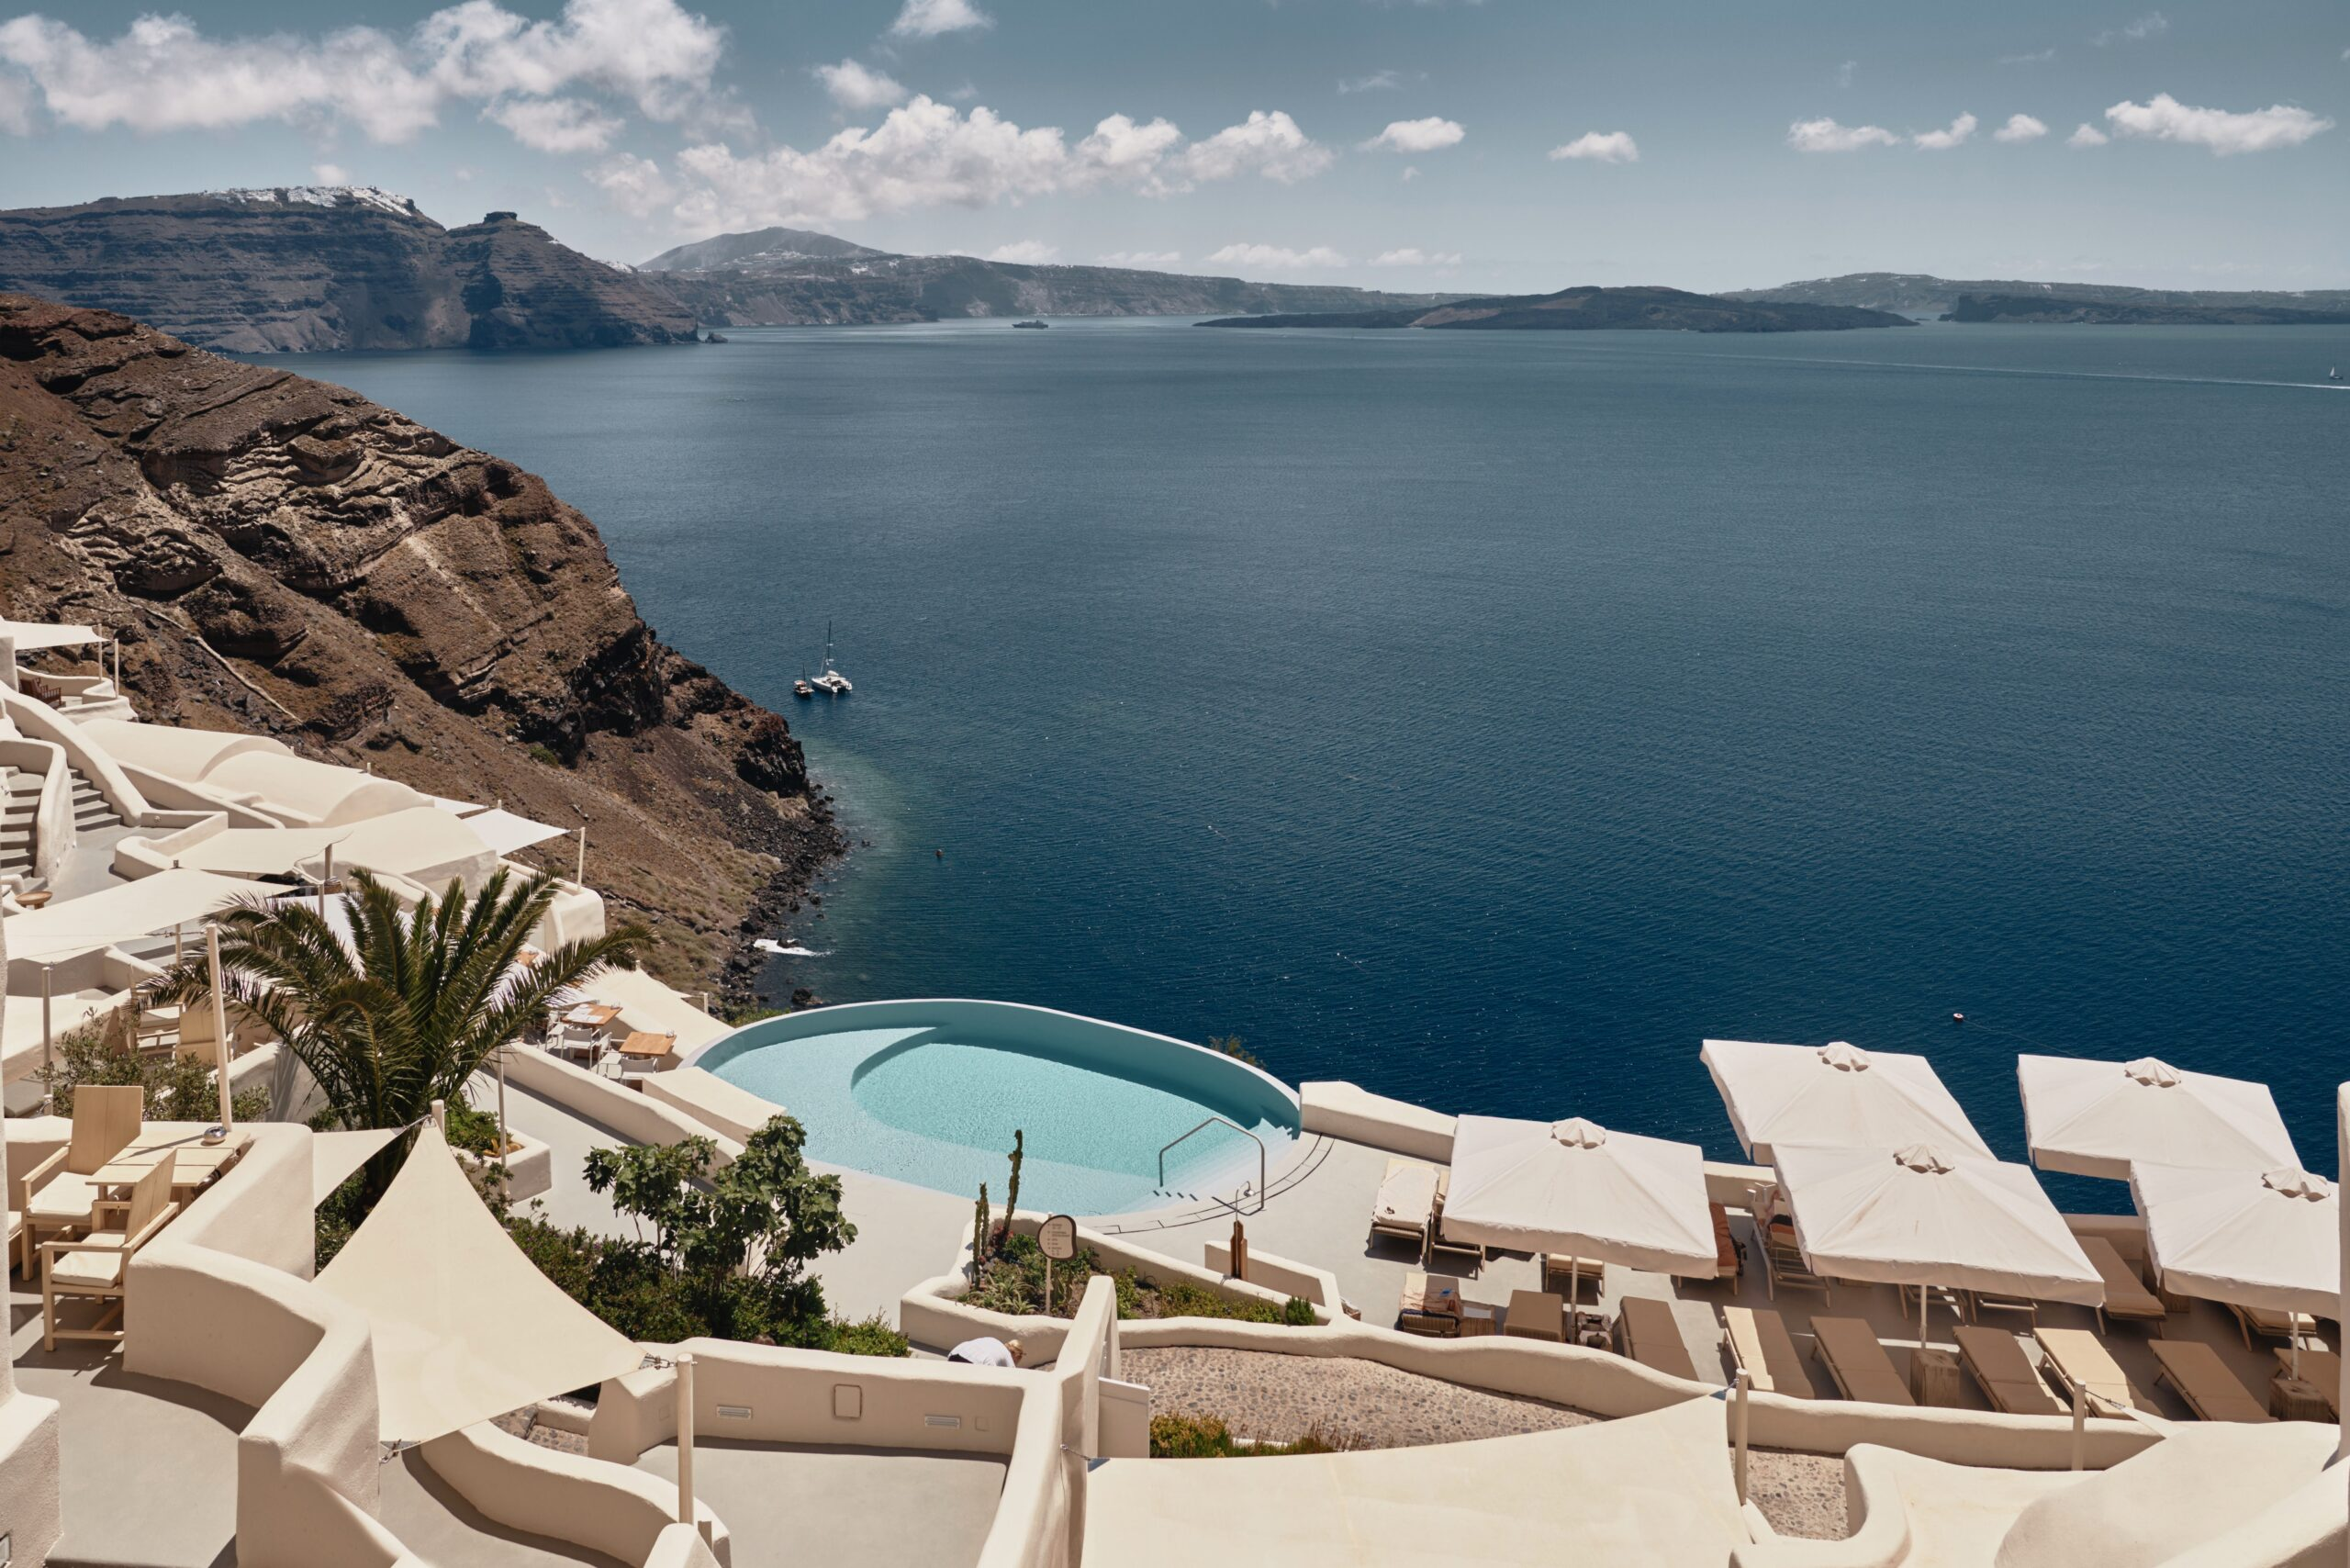 Mystique hotel overview overlooking the deep blue of the Aegean Sea